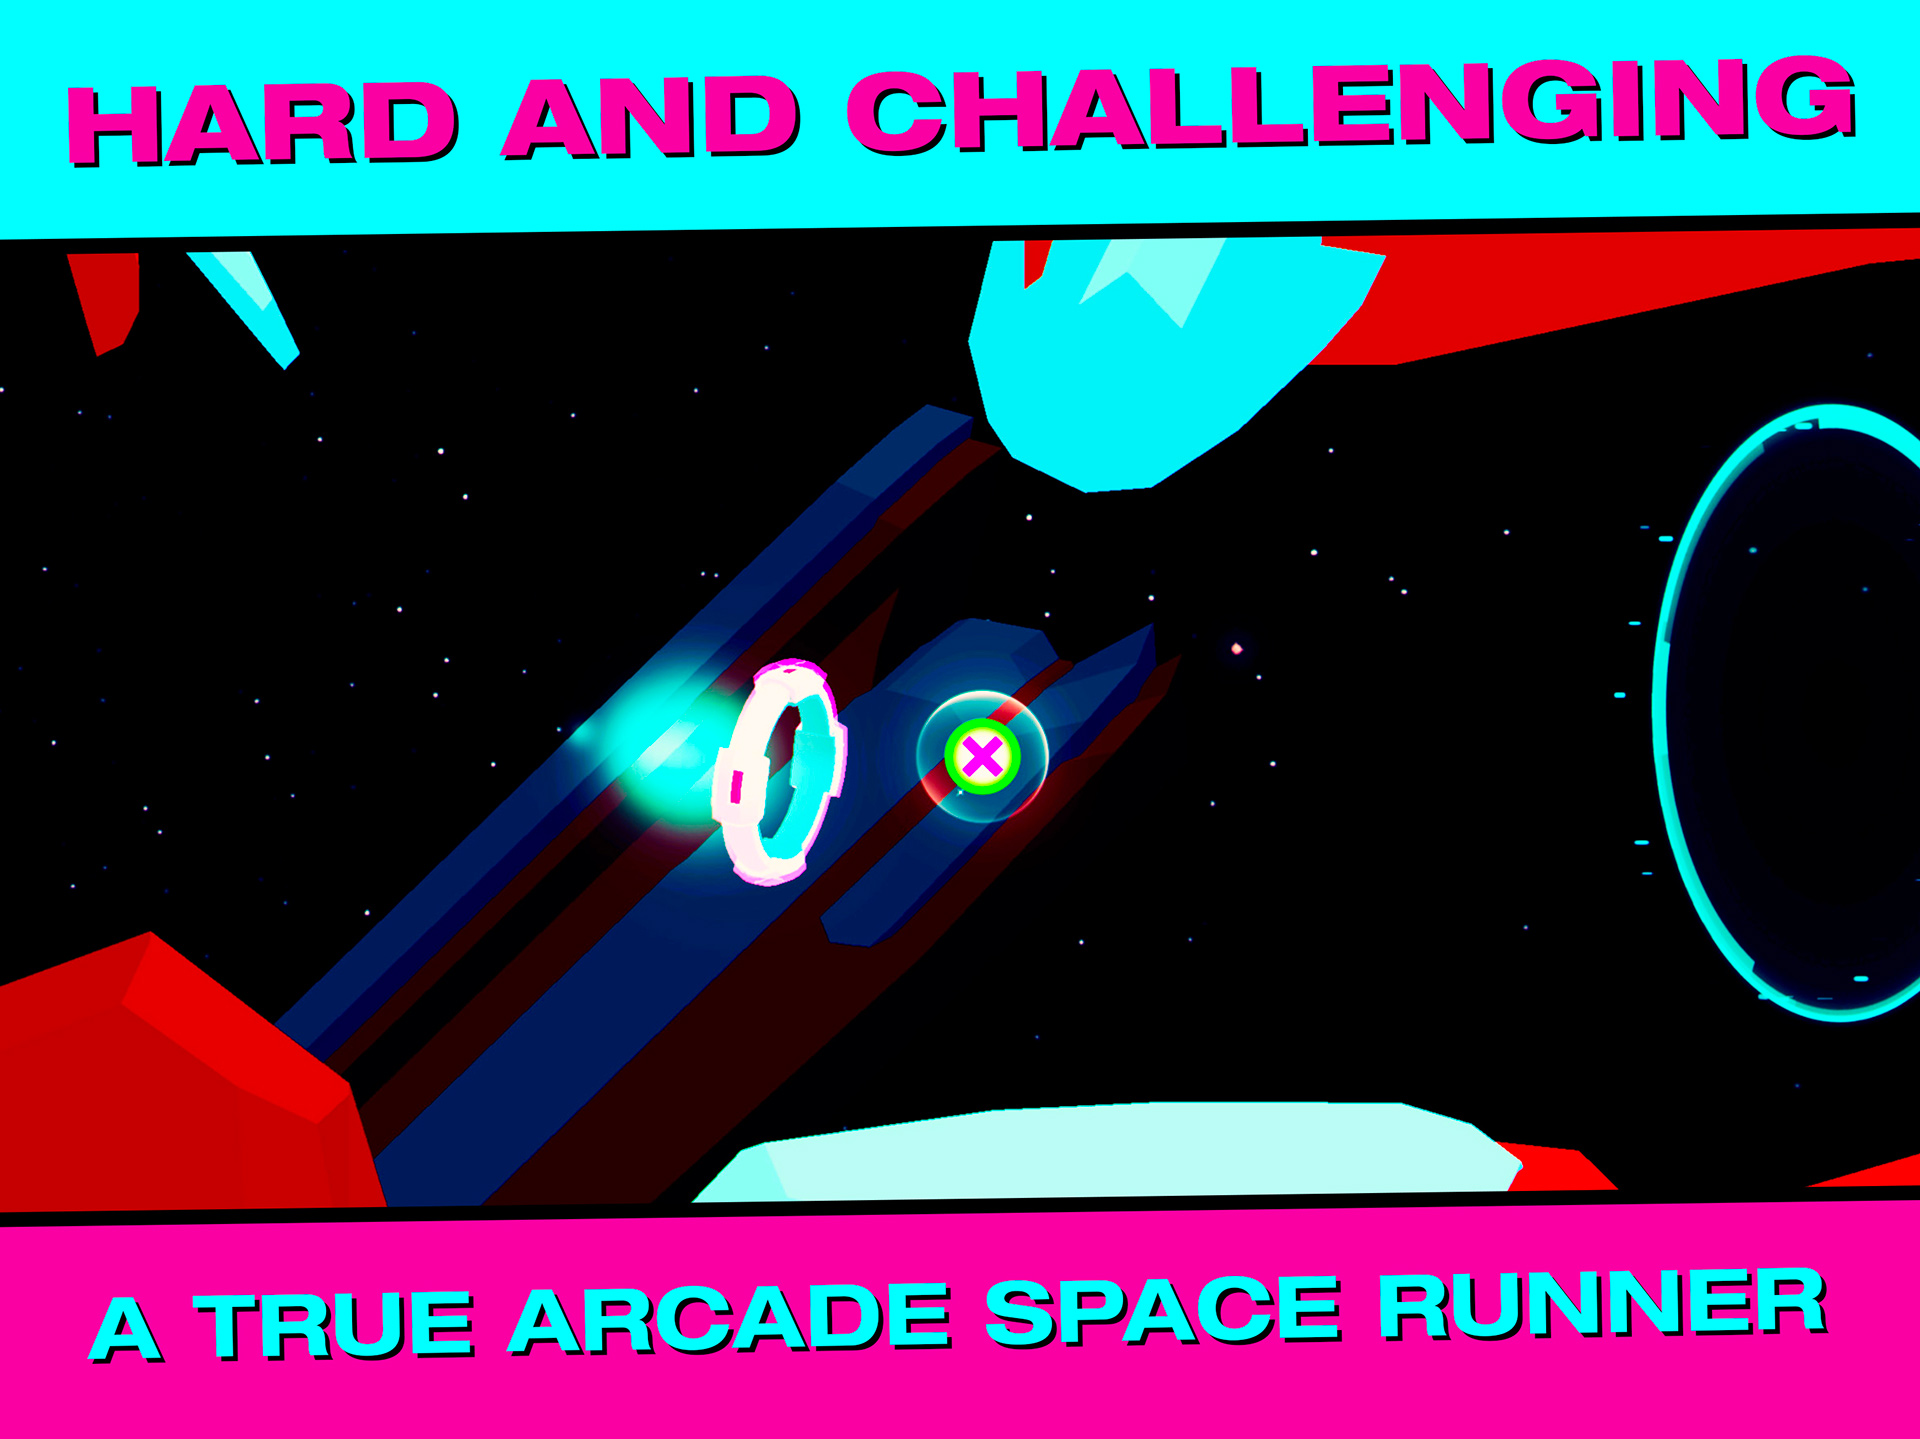 HARD AND CHALLENGING. A TRUE ARCADE SPACE RUNNER